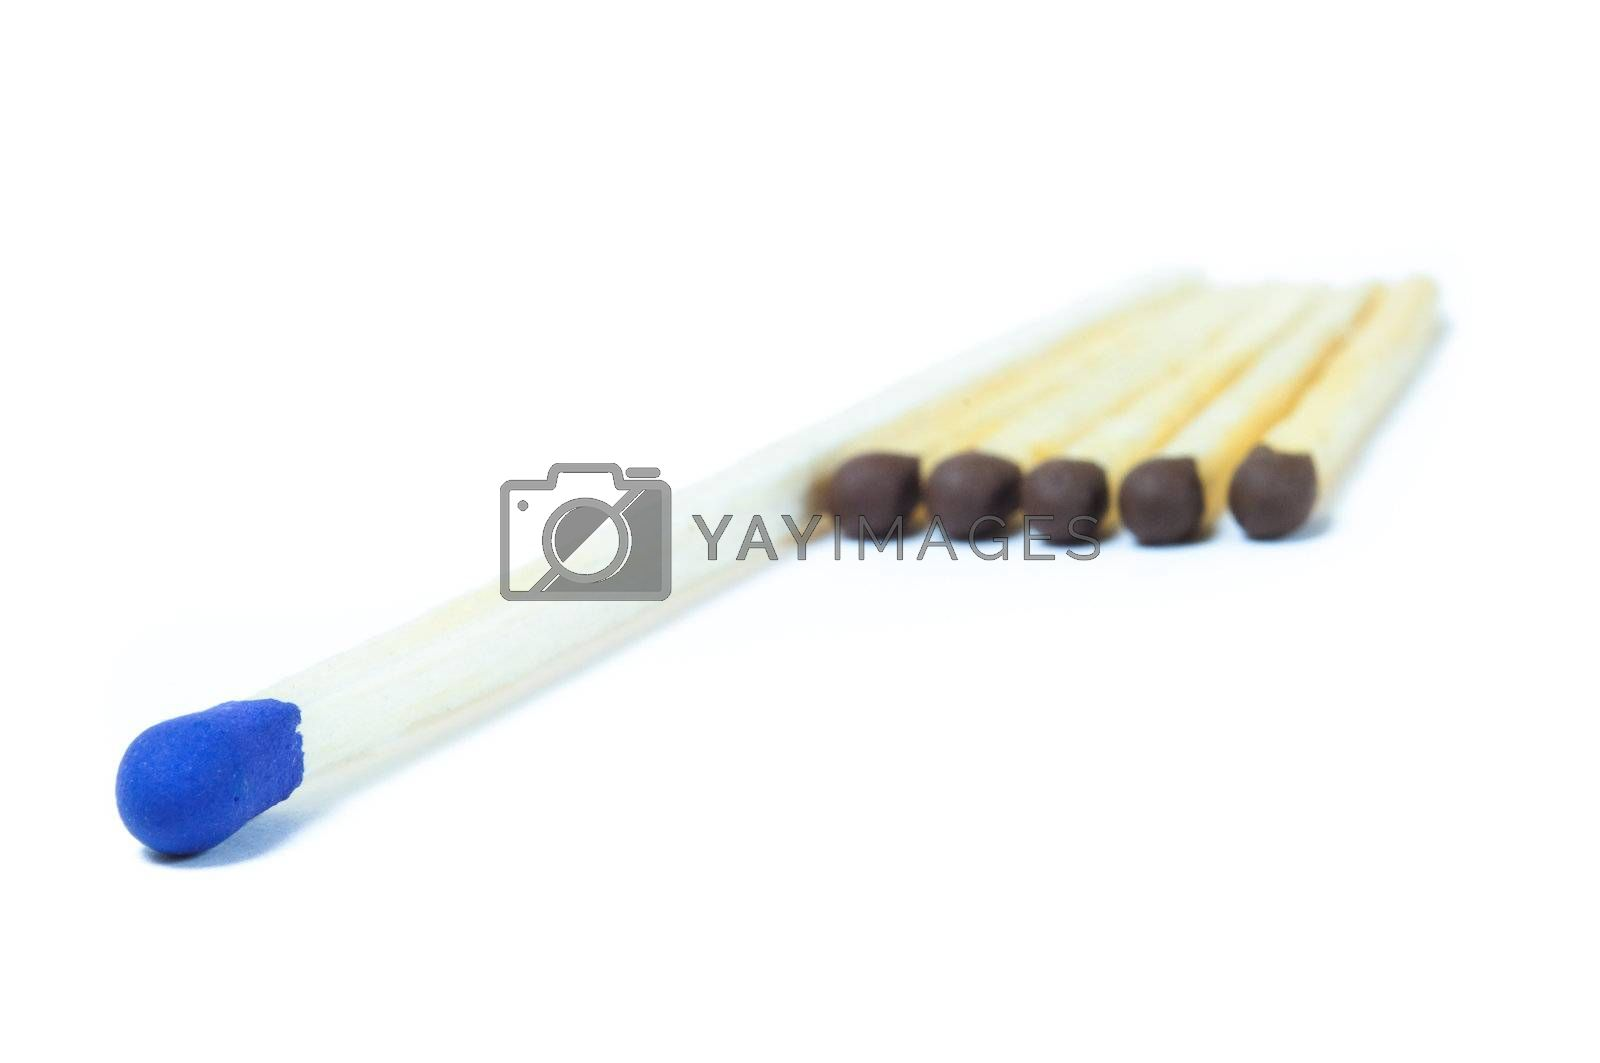 A number of identical matches, among which there is a match differs from their large size